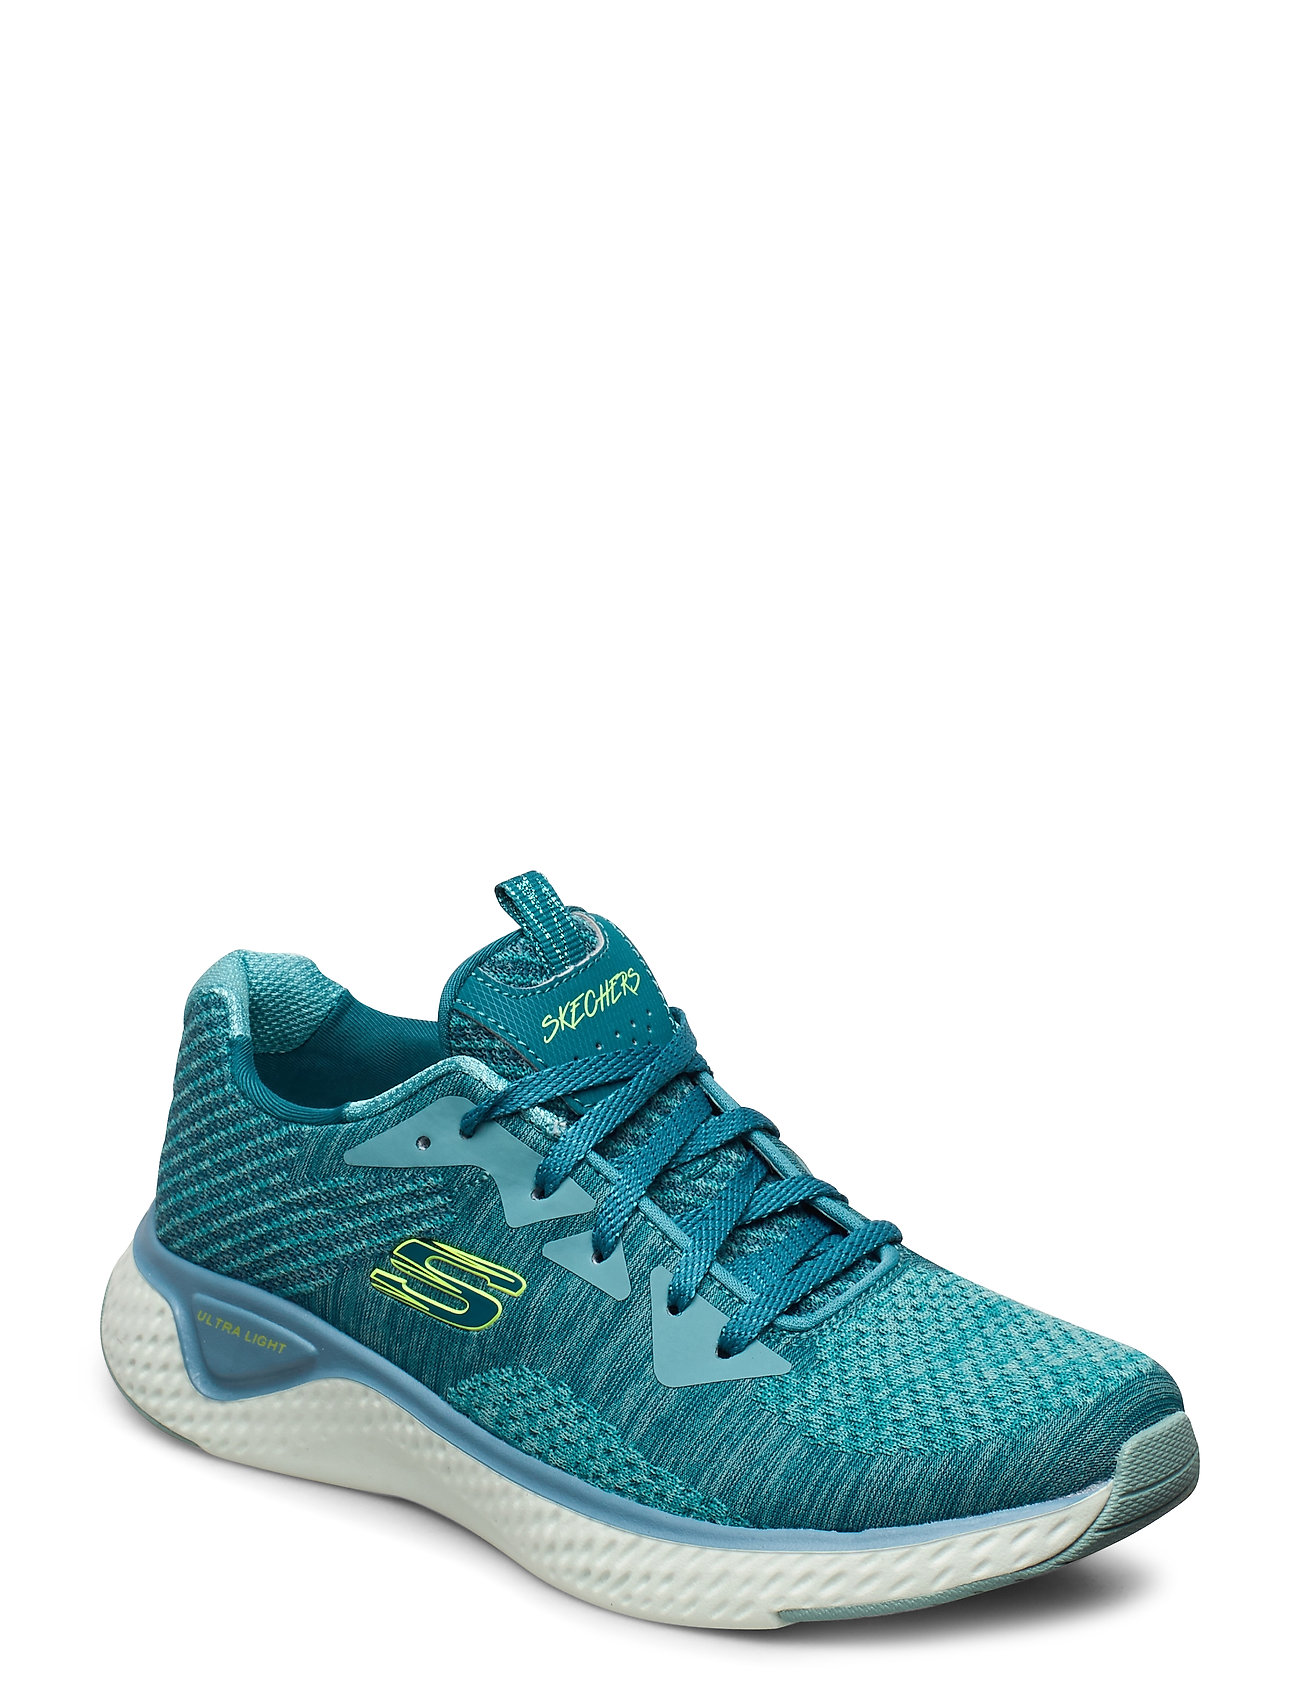 Image of Womens Solar Fuse - Brisk Escape Low-top Sneakers Blå Skechers (3435719589)